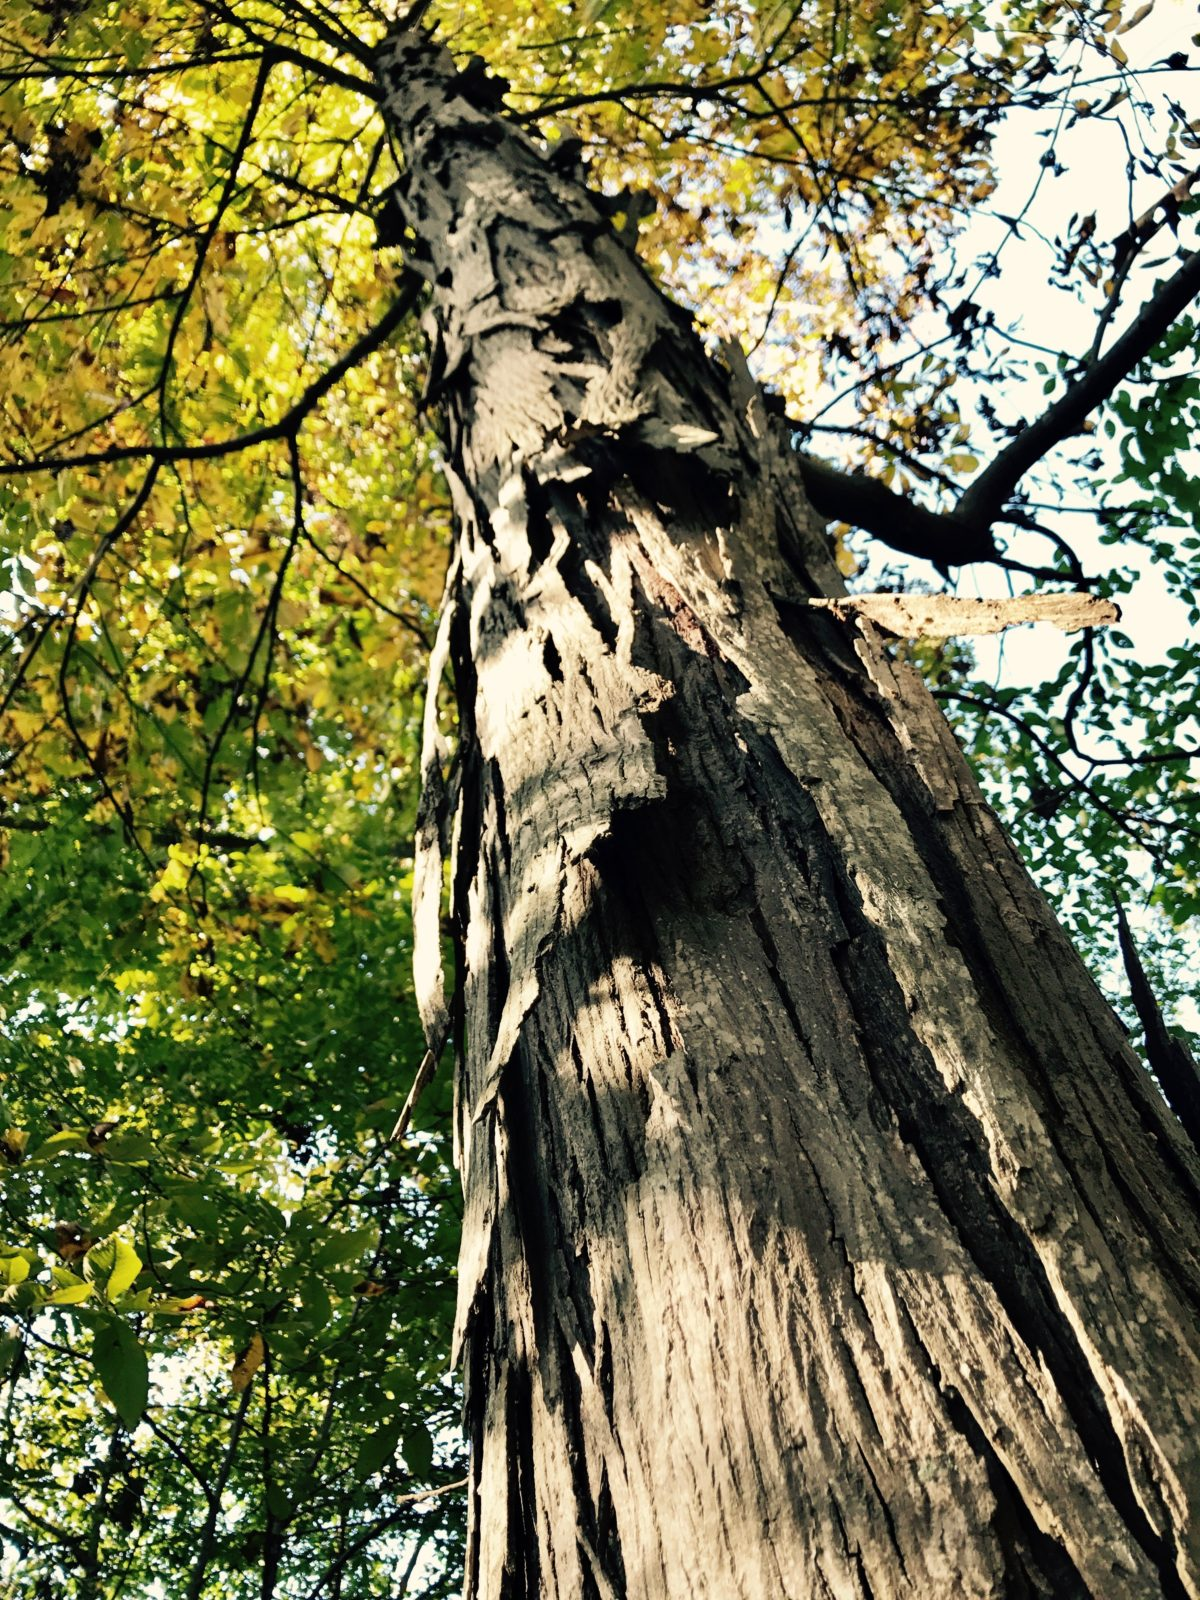 In addition to caves, trees like the Shagbark Hickory provide roosts for small bats. (Nicole Erwin | Ohio Valley ReSource)